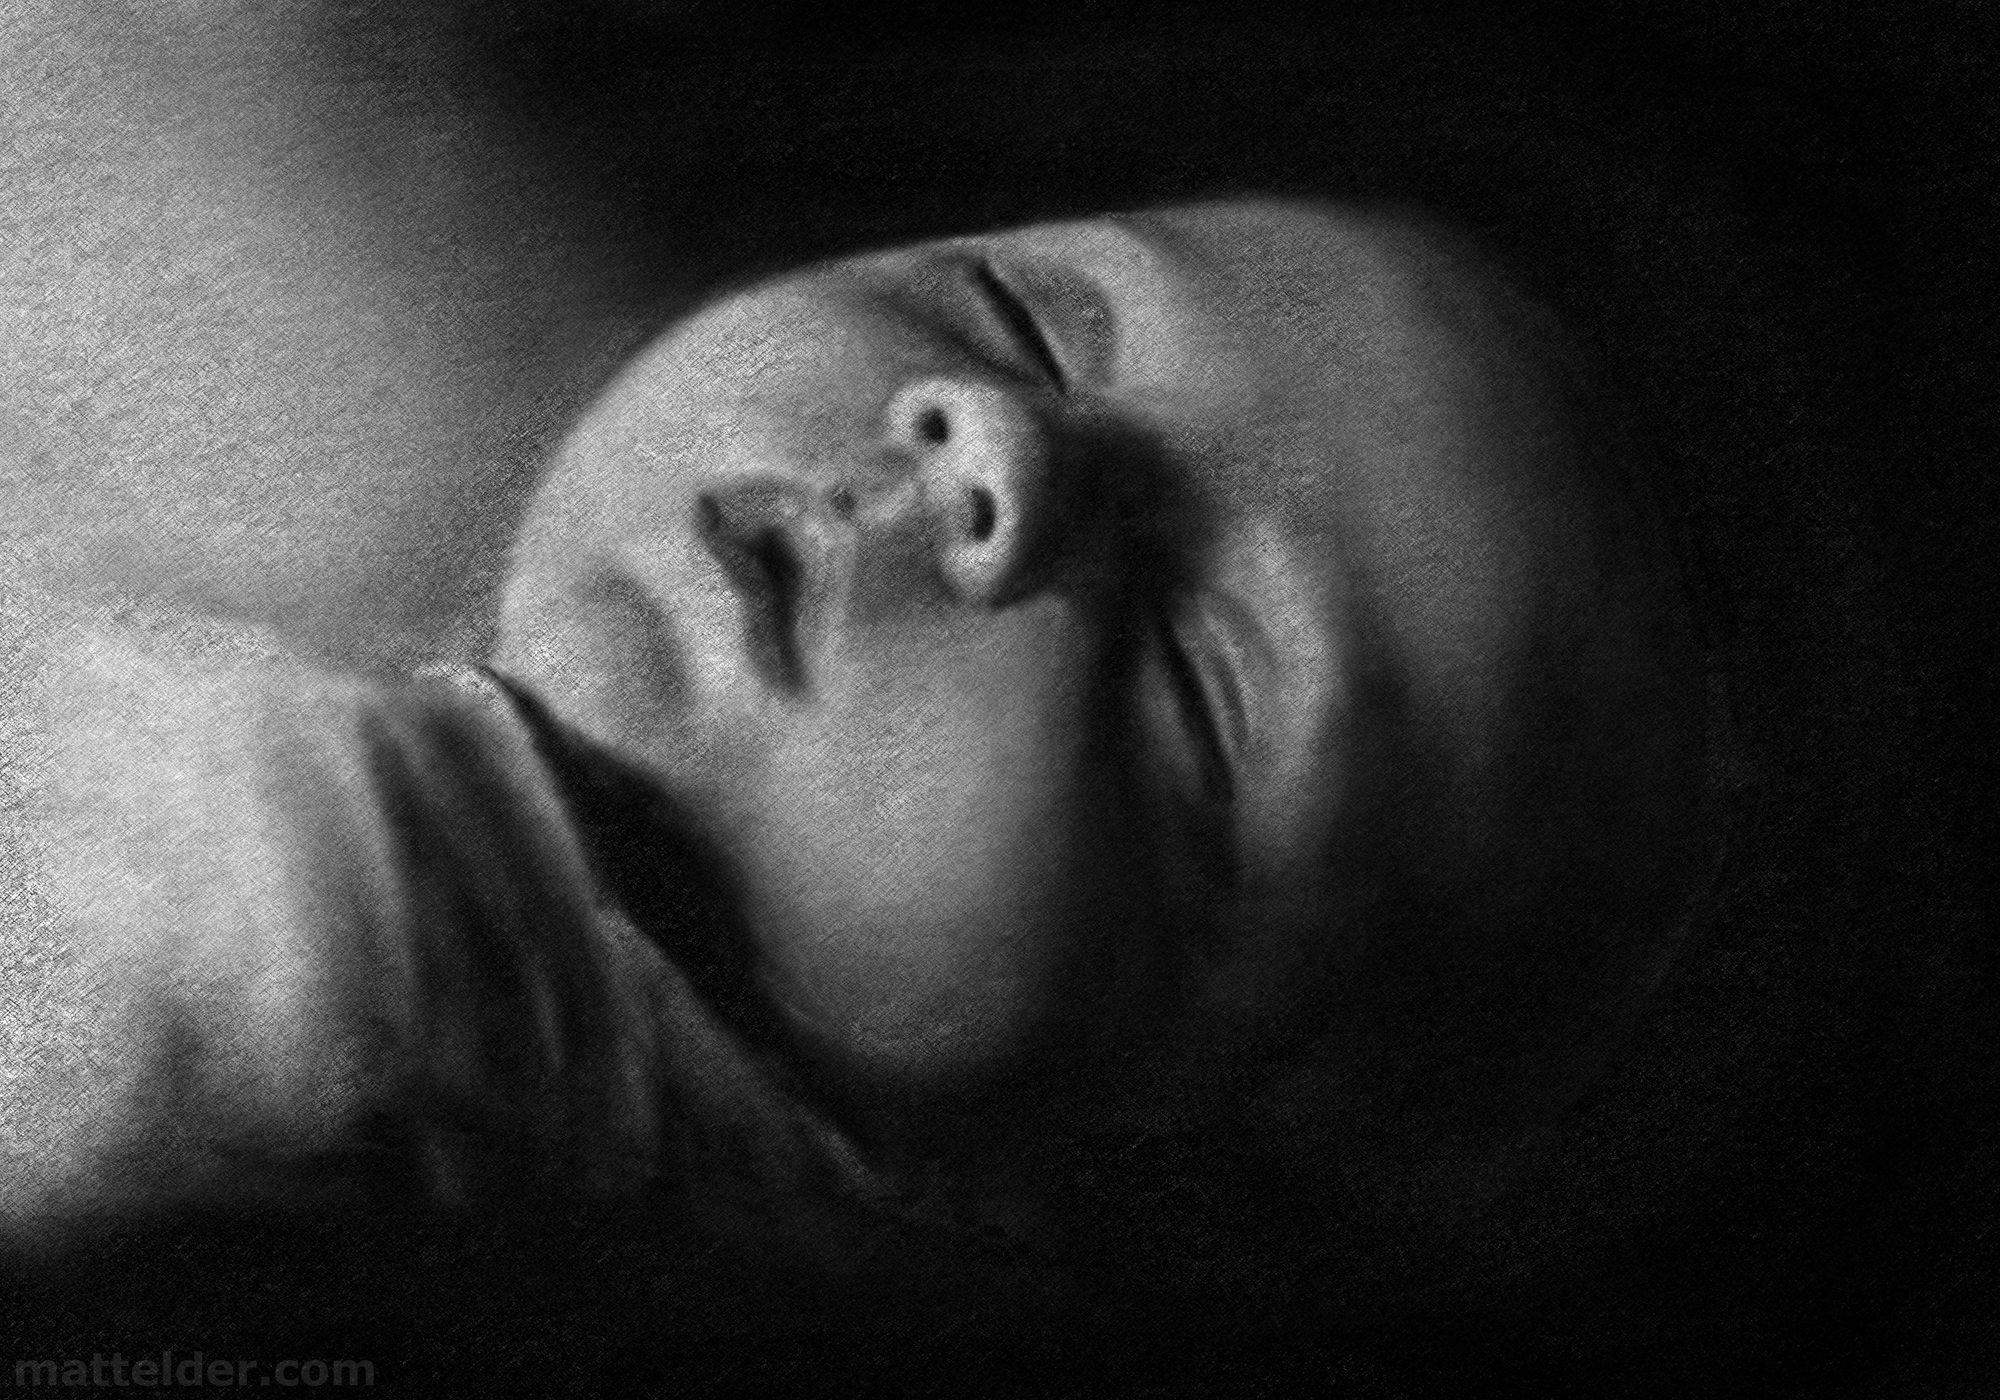 Baby Sleeping Portrait Study